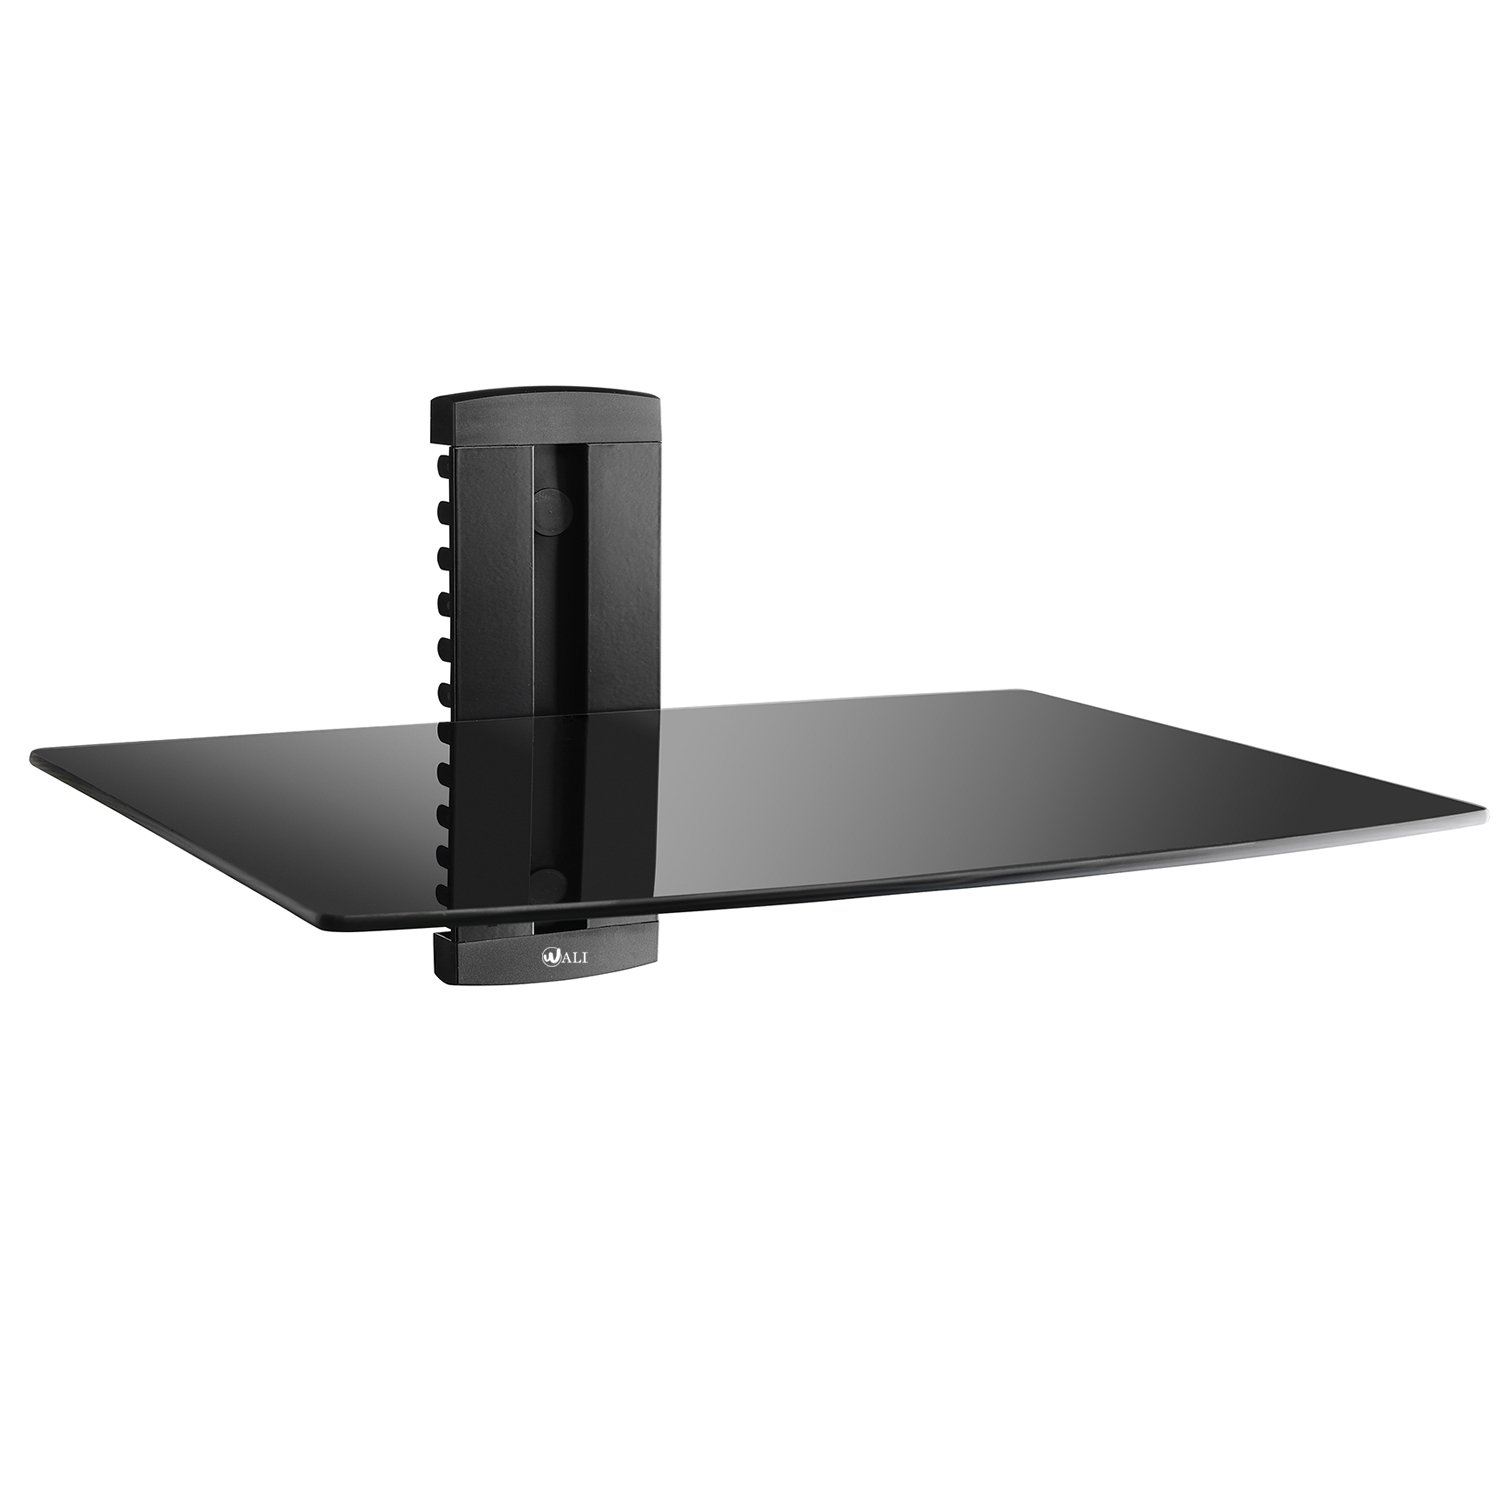 WALI DVD DVR VCR Wall Mount Bracket Component Shelf (CS201-1), 1 Shelf, Black by WALI